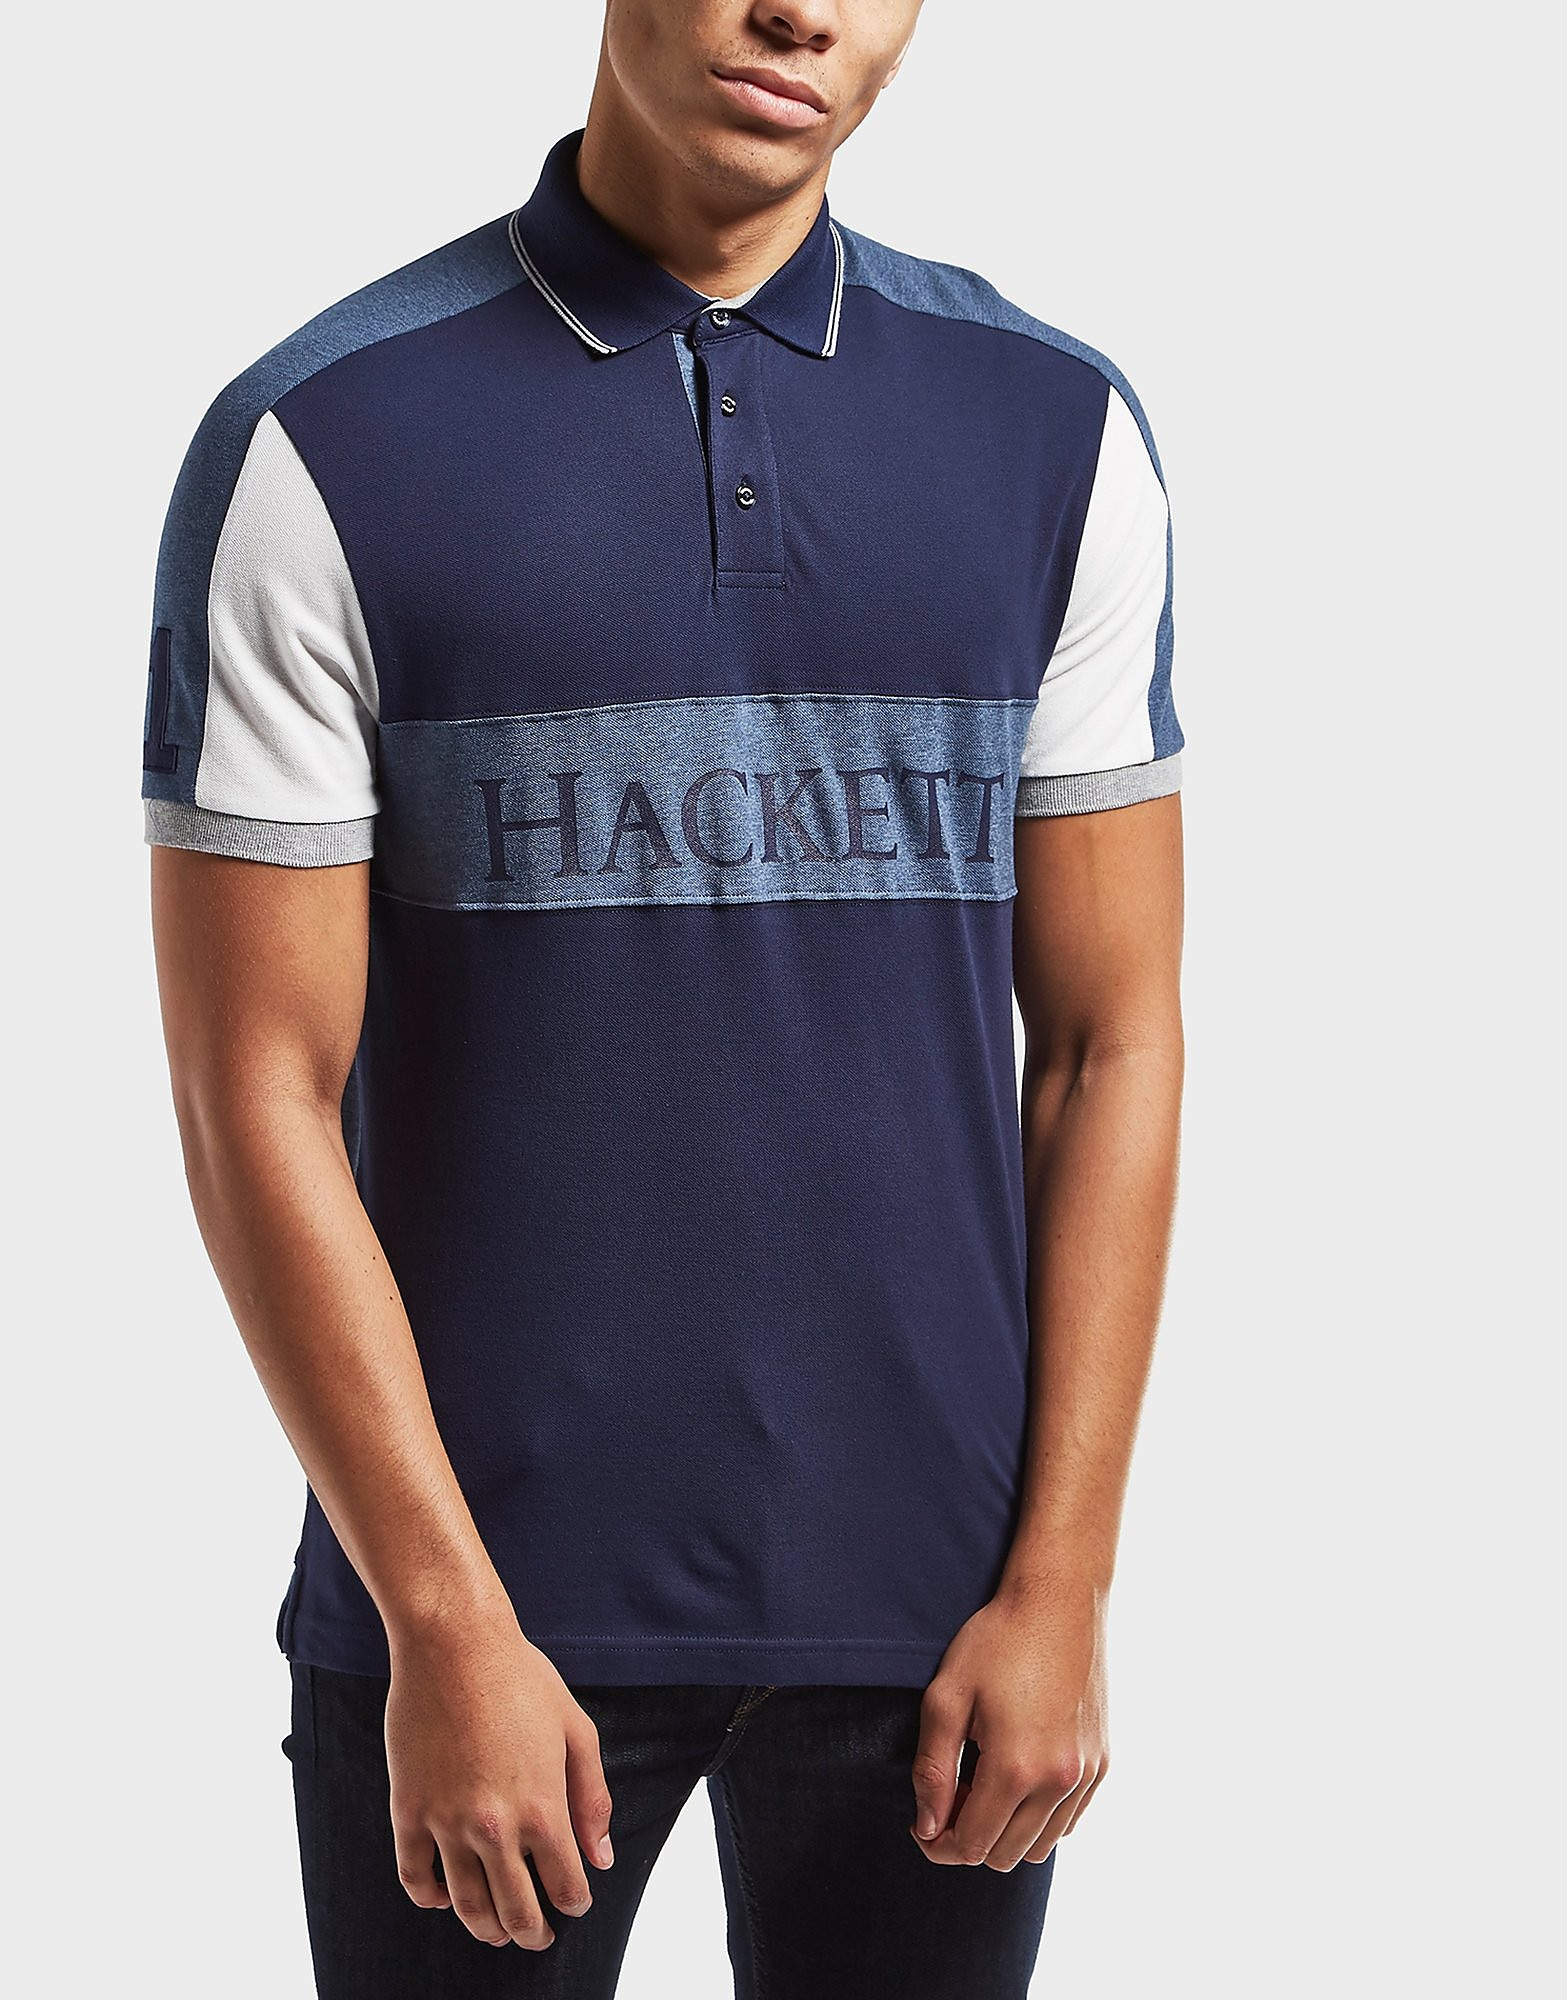 HACKETT Panel Short Sleeve Polo Shirt